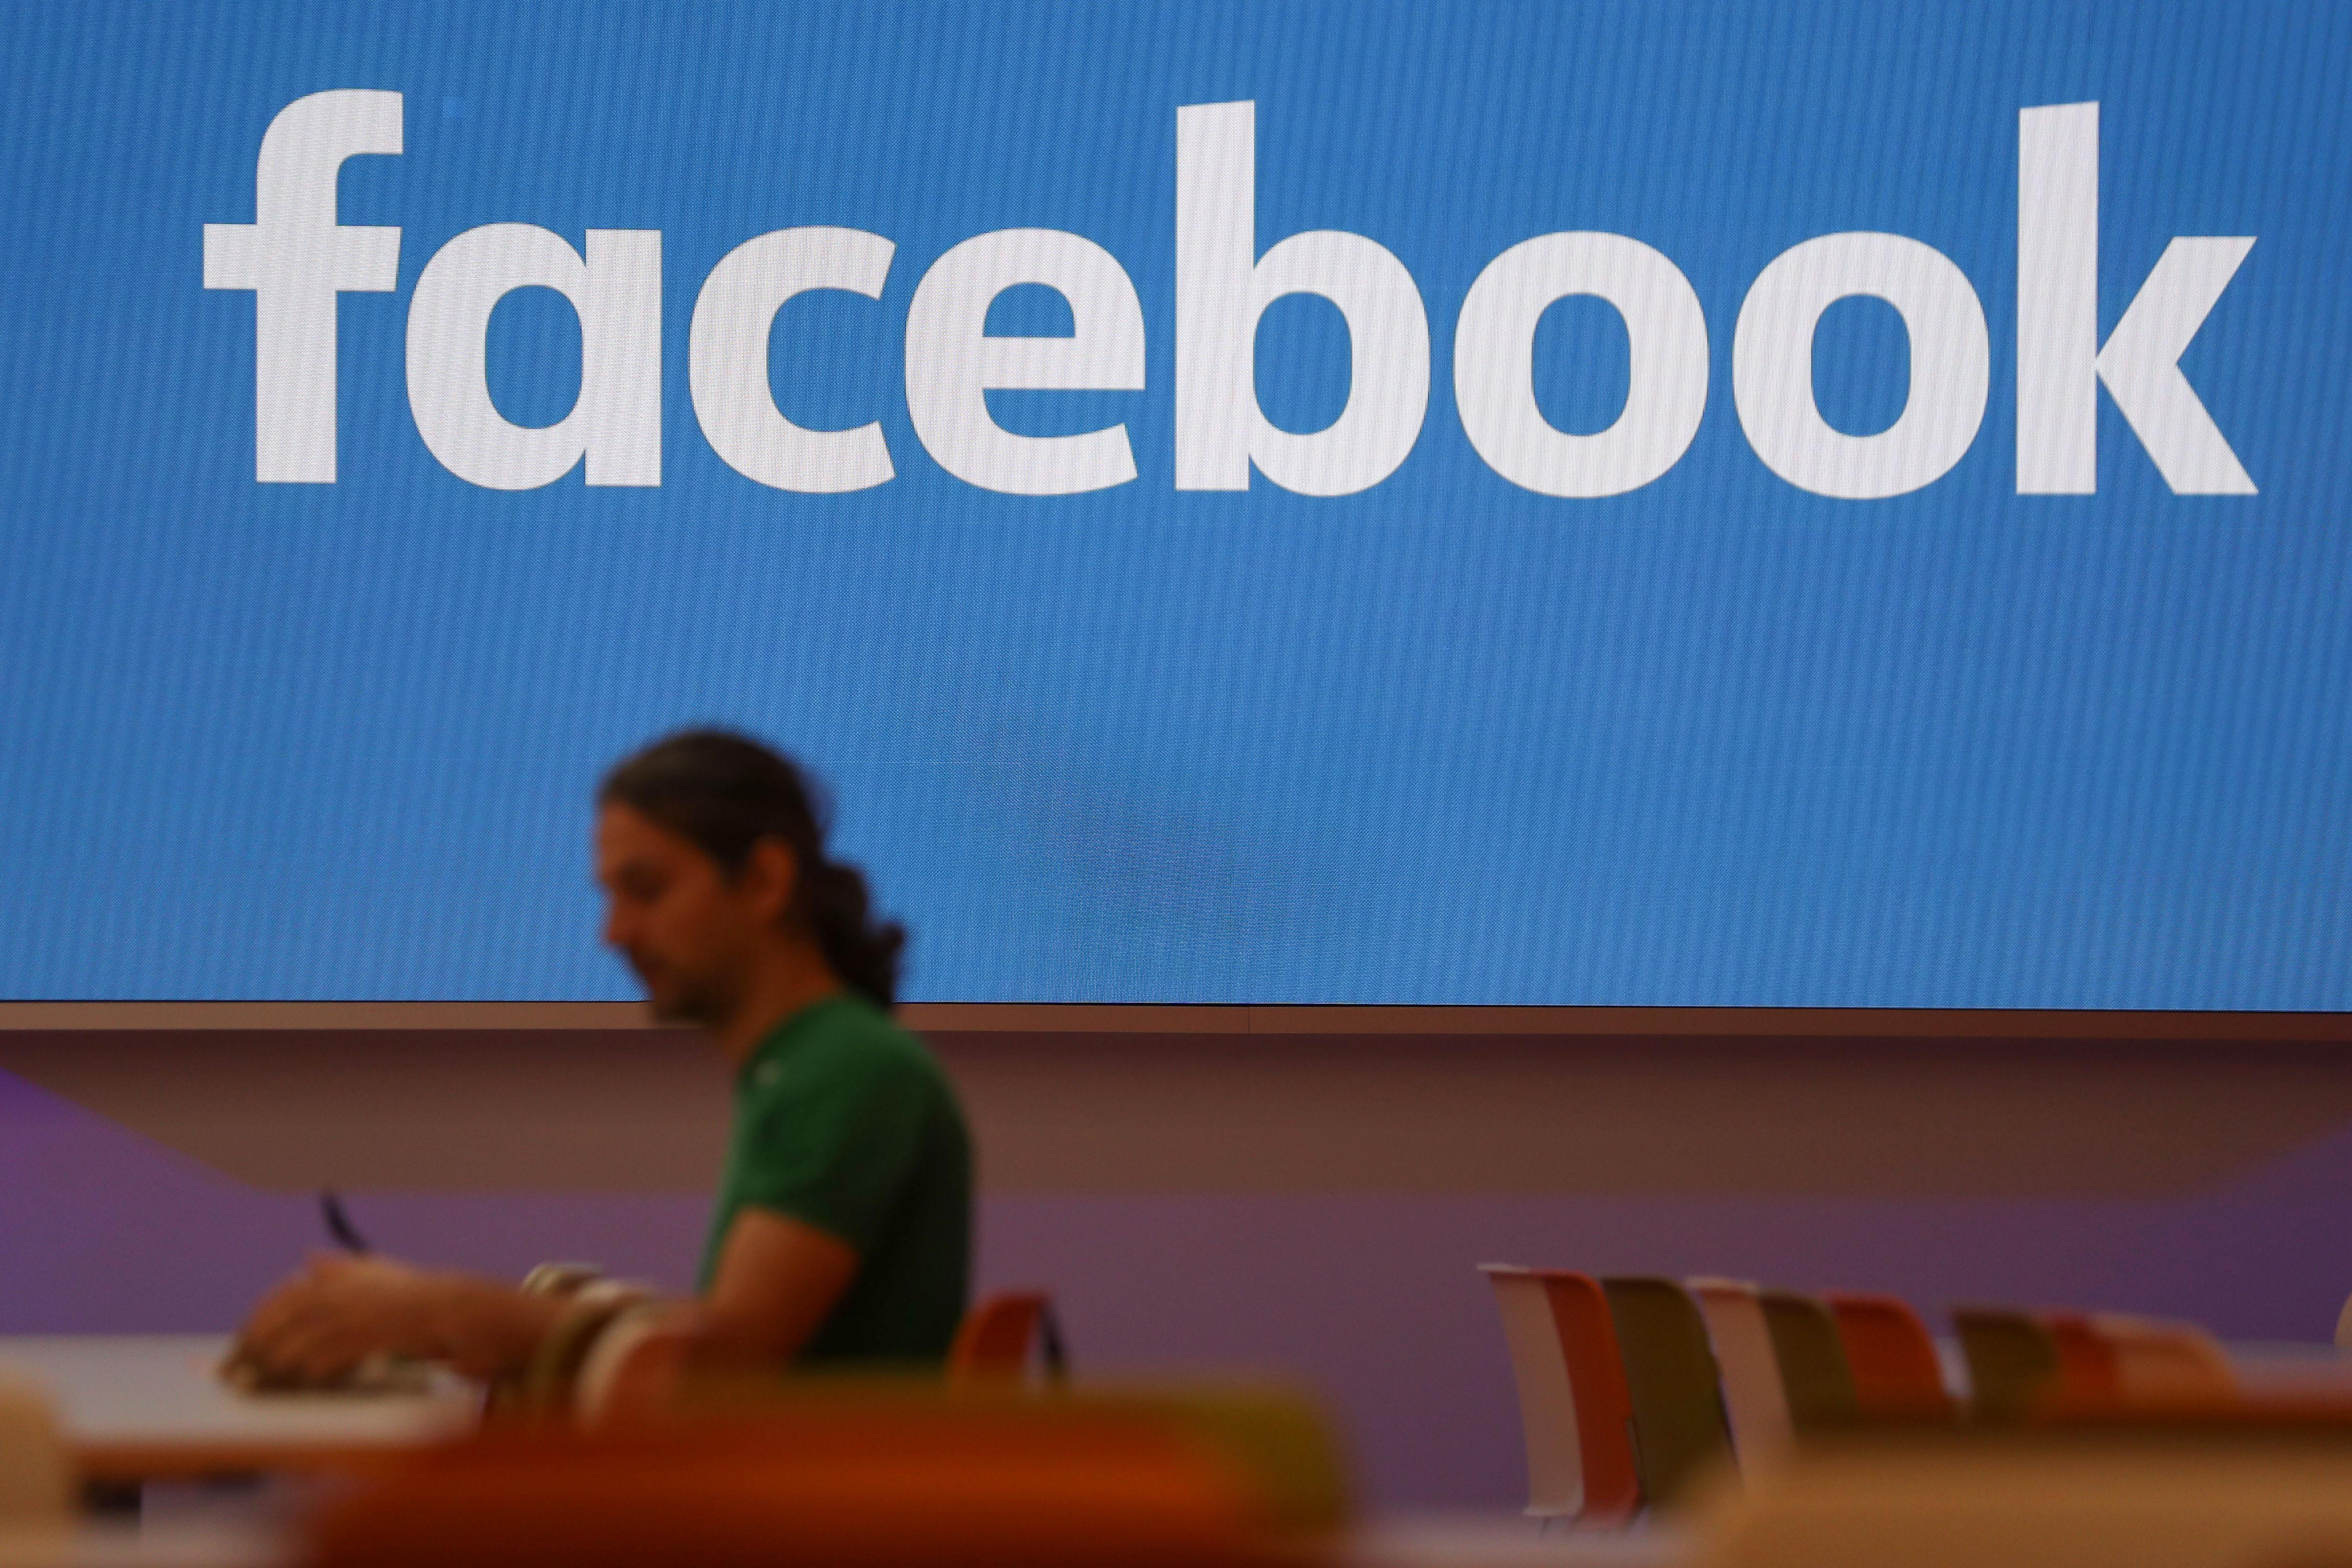 Conservative Facebook employees angry about company's 'intolerance'